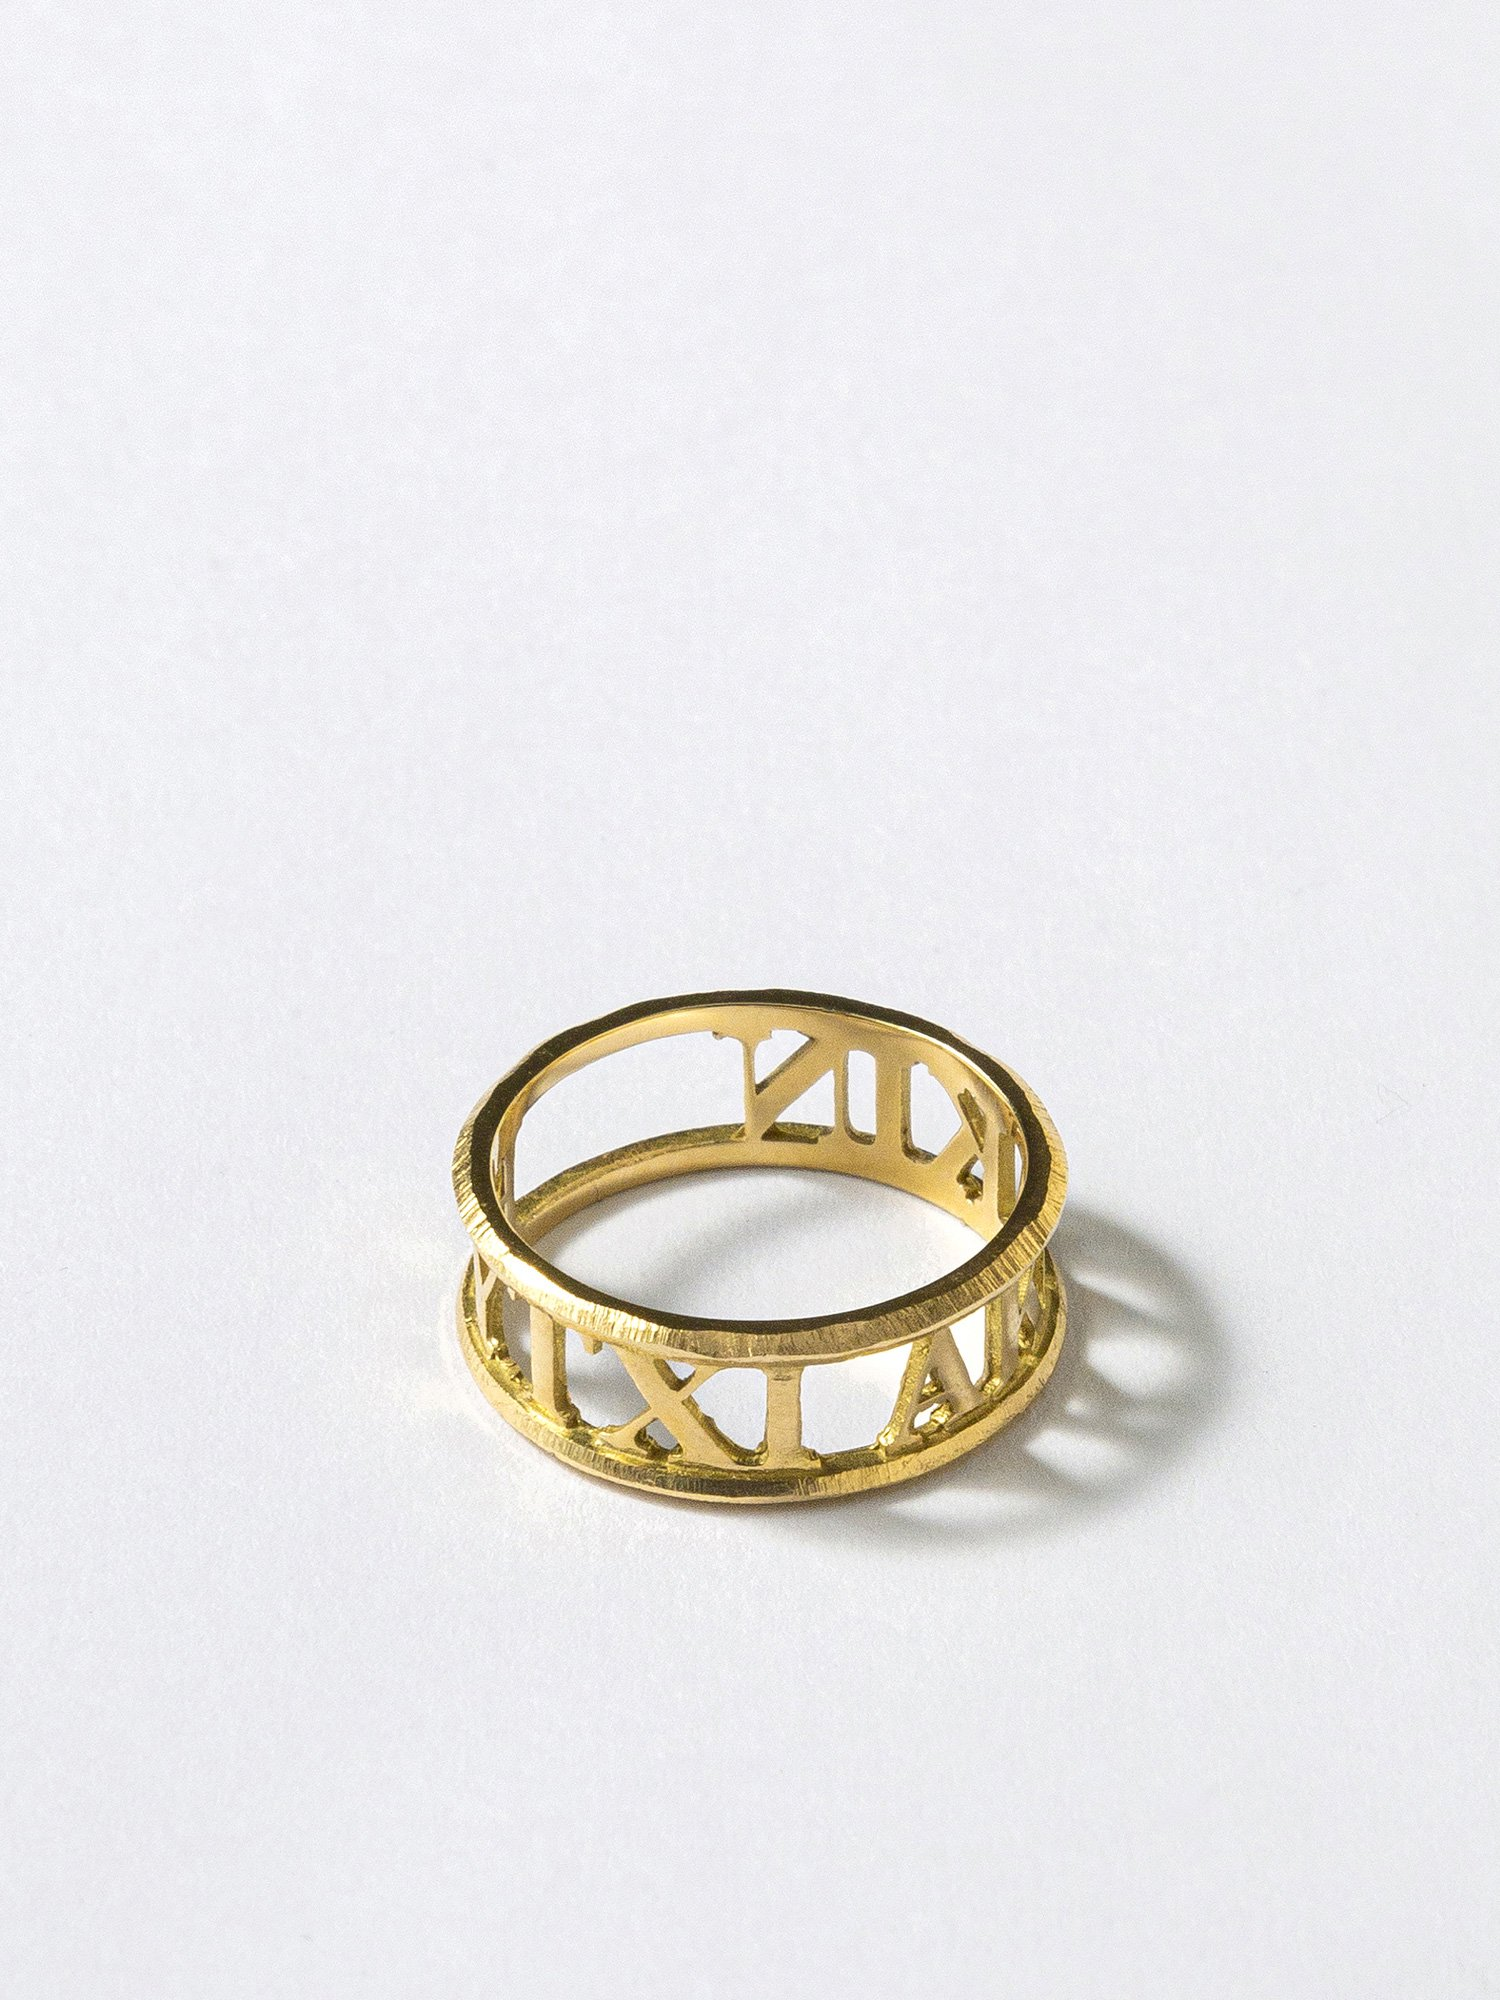 AMOUR / Inscription ring / EYTYXI AKAKIN